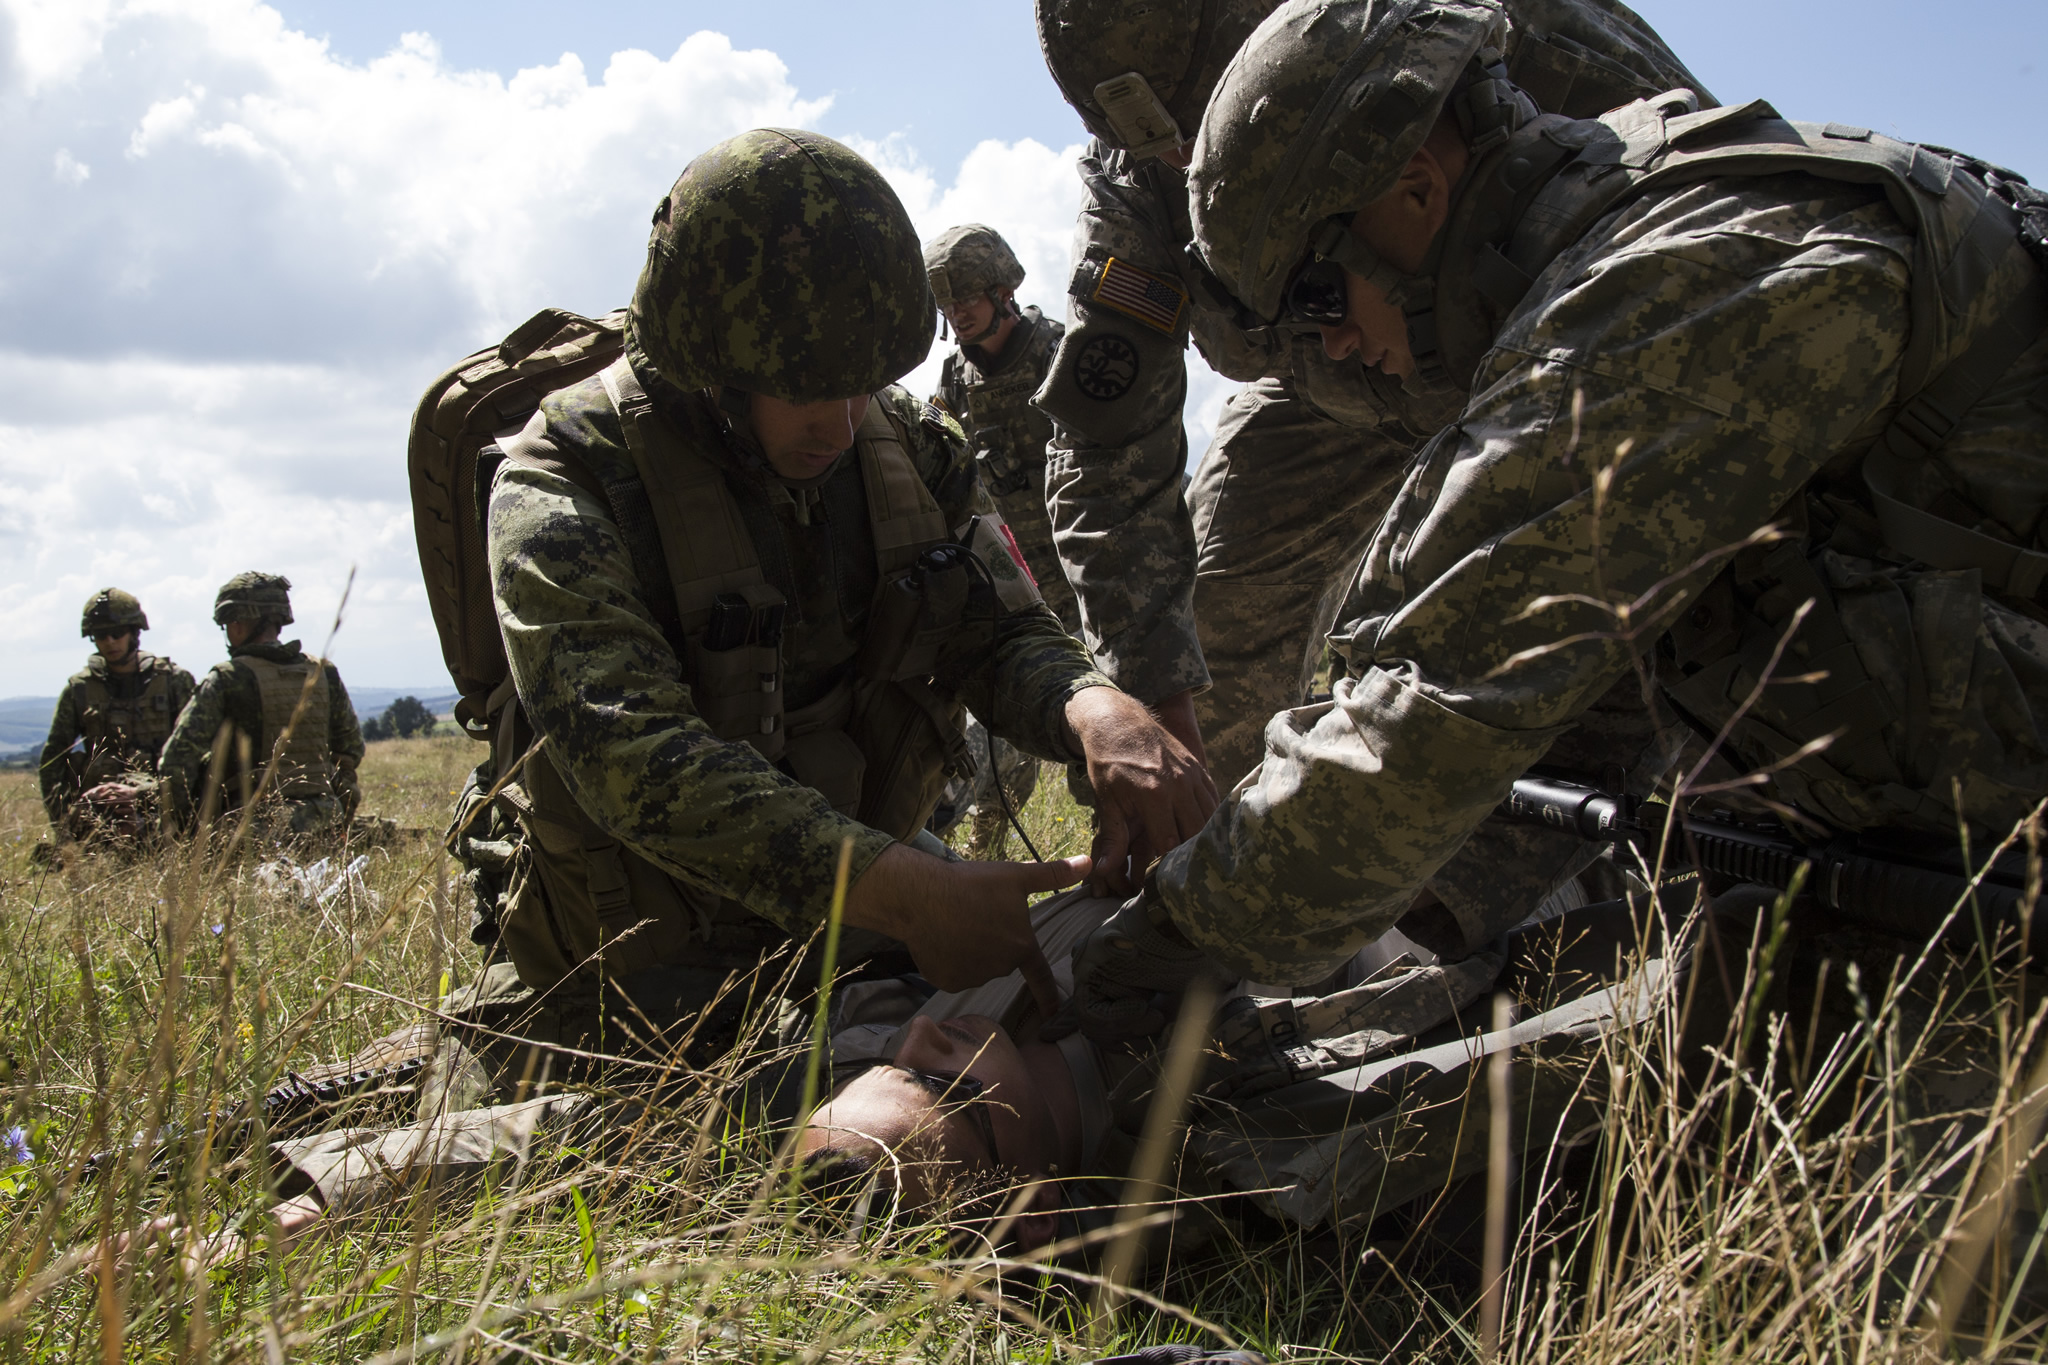 Corporal Sonny Gauthier (left), a medical technician of 5 Field Ambulance deployed as part of the Operation REASSURANCE Land Task Force (LTF), provides first aid advice to American soldiers of the 116th Cavalry Brigade Combat Team during Exercise SABER GUARDIAN, a multinational exercise comprising 10 countries, in Cincu, Romania on August 3, 2016. Canadian soldiers are deployed to Central and Eastern Europe as part of the LTF to support NATO assurance and deterrence measures, and improve interoperability with allies. (Photo: Corporal Guillaume Gagnon, Liaison Officer Driver, Operation REASSURANCE Land Task Force)